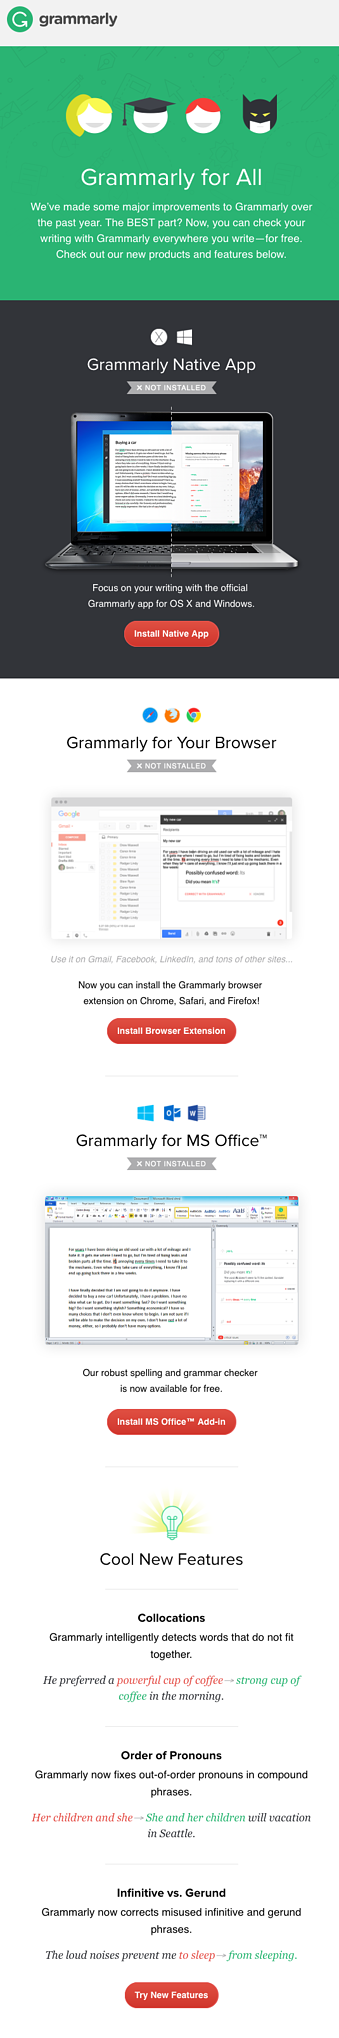 Grammarly features email